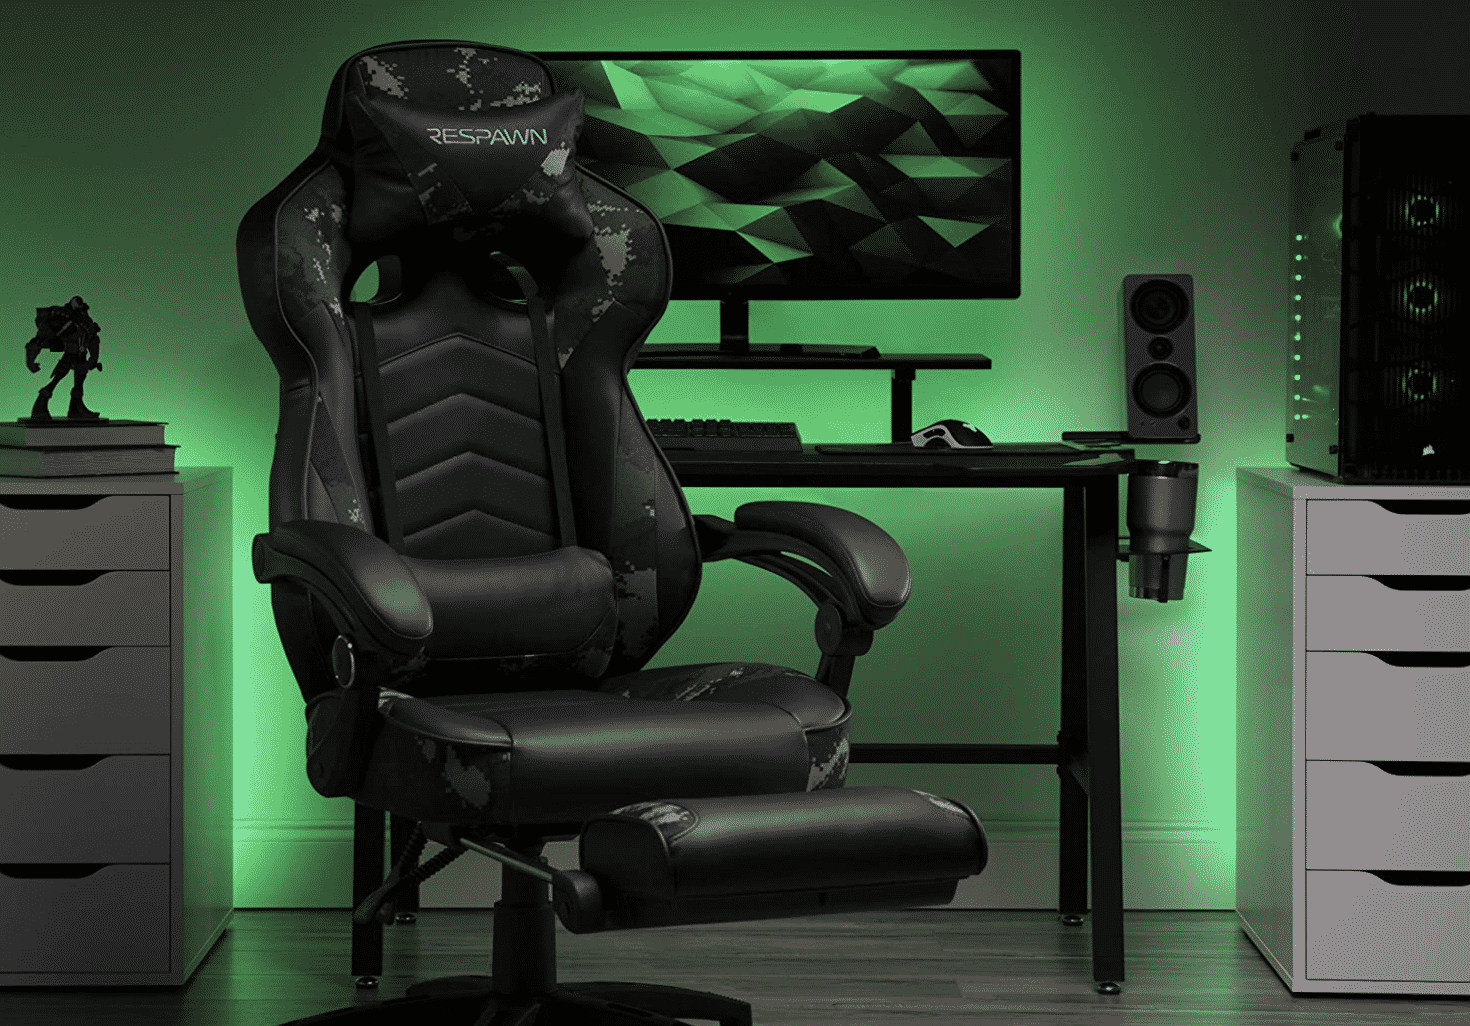 Camouflage-Designed Gaming Chair